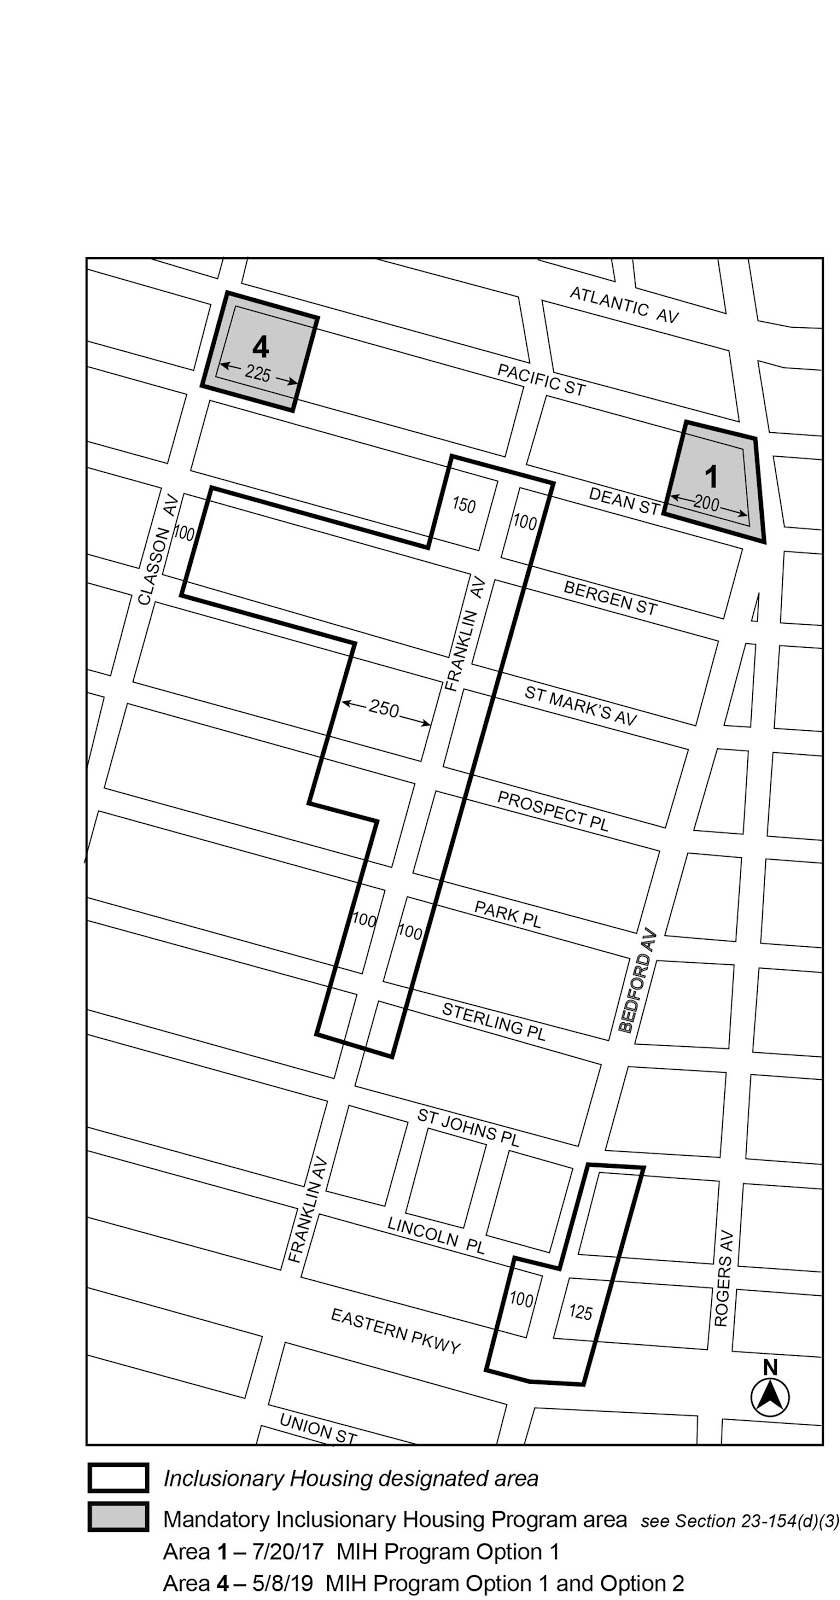 Zoning Resolutions F-Inclusionary Housing Designated Areas and Mandatory Inclusionary Housing Areas_2.64